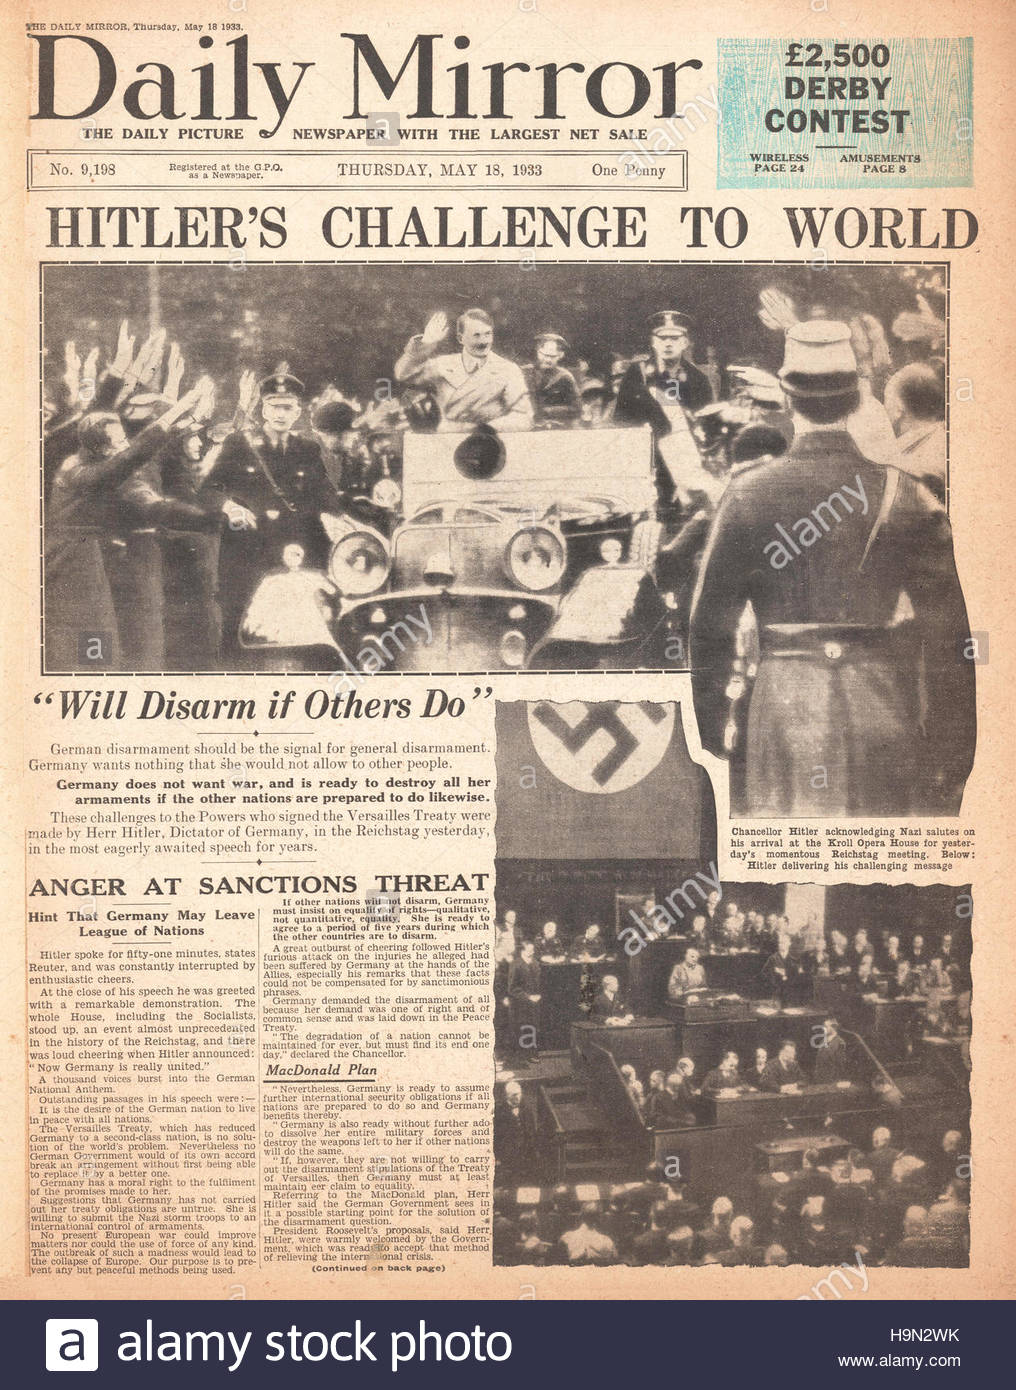 1933 Daily Mirror front page Adolf Hitler speech at the Reichstag - Stock Image